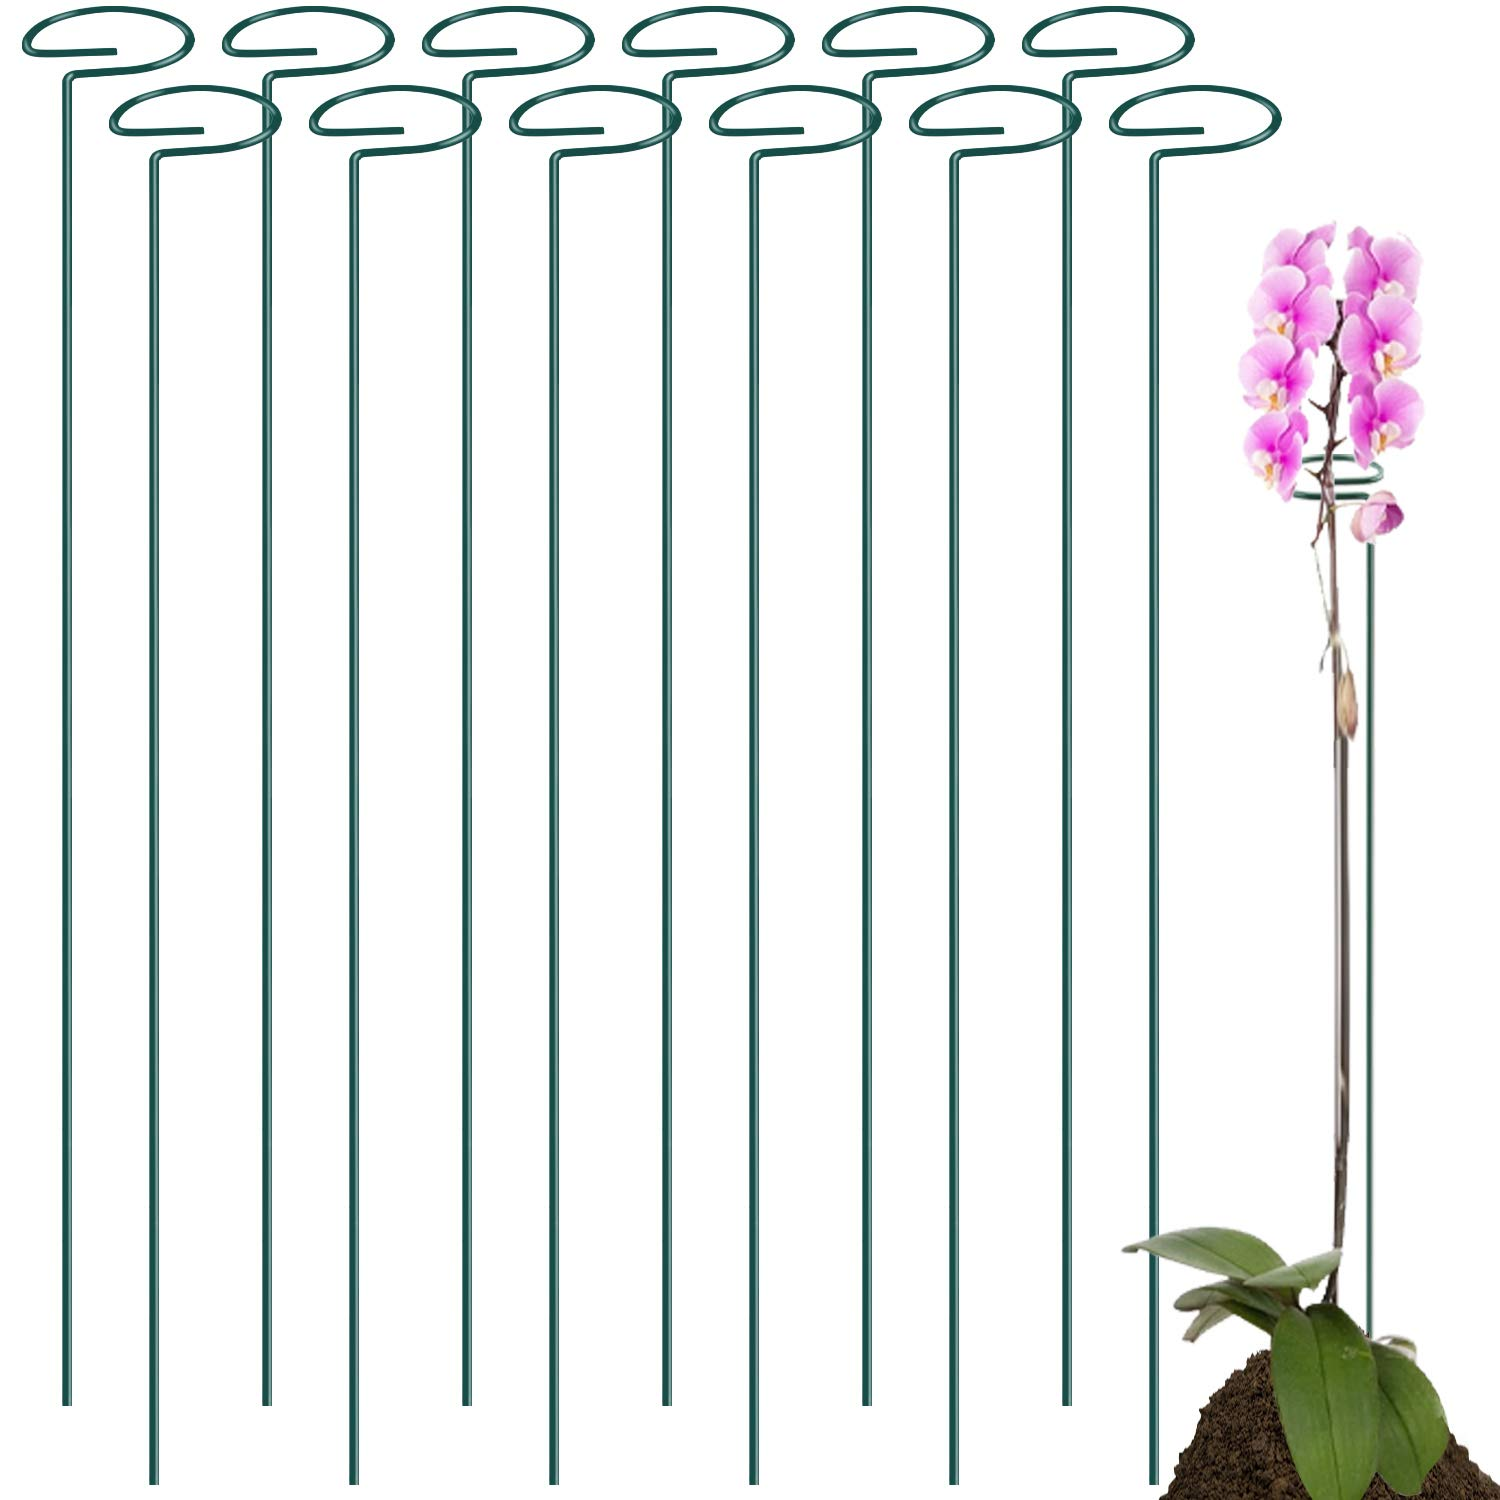 12 Pack 36 Inch Plant Support Stakes ,Single Stem Plant Support Stake Single Plant Stem Garden Flower Support Stake Steel Plant Cage Support Ring für Amaryllis Rose Pepper Plants Lily Tomatoes Peony